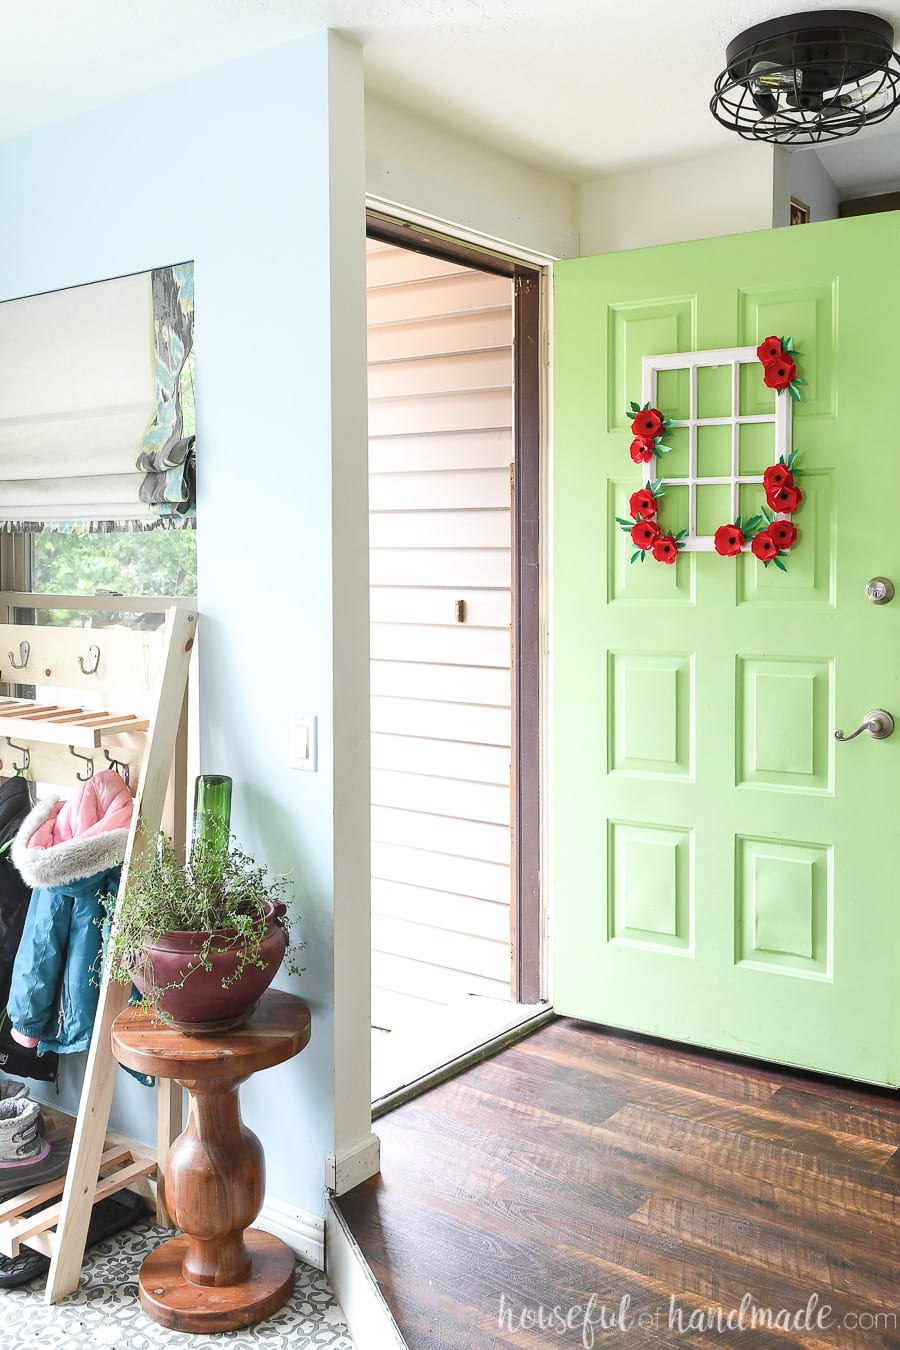 Entryway with bright green door decorated with a wreath made from a window frame.